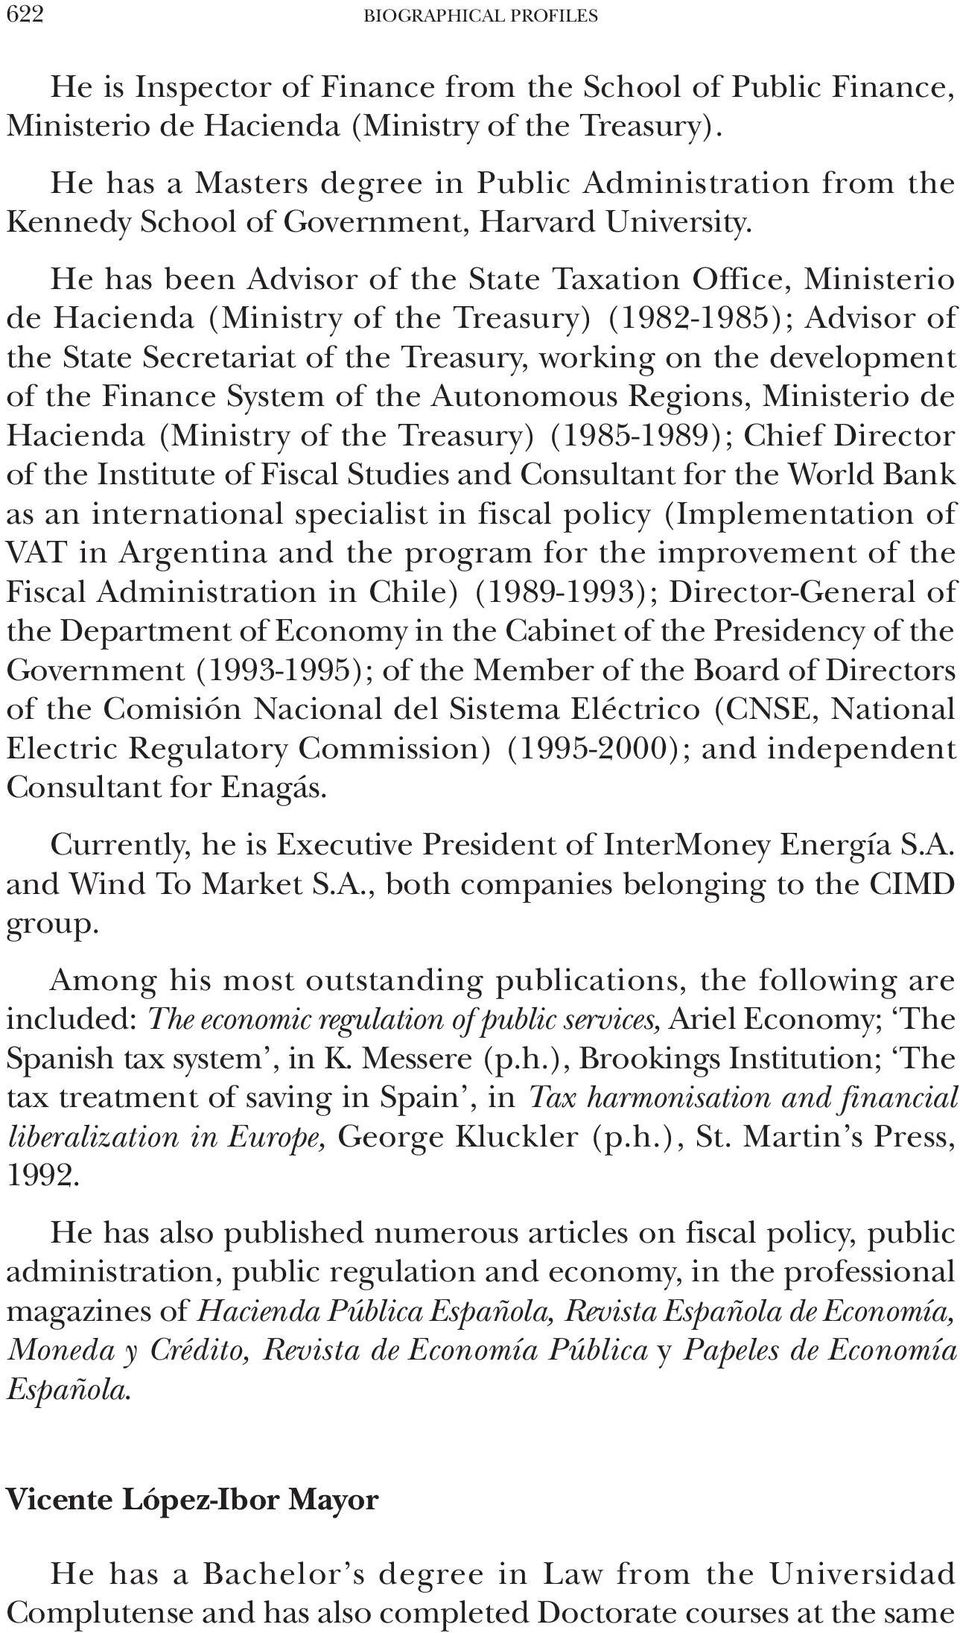 He has been Advisor of the State Taxation Office, Ministerio de Hacienda (Ministry of the Treasury) (1982-1985); Advisor of the State Secretariat of the Treasury, working on the development of the